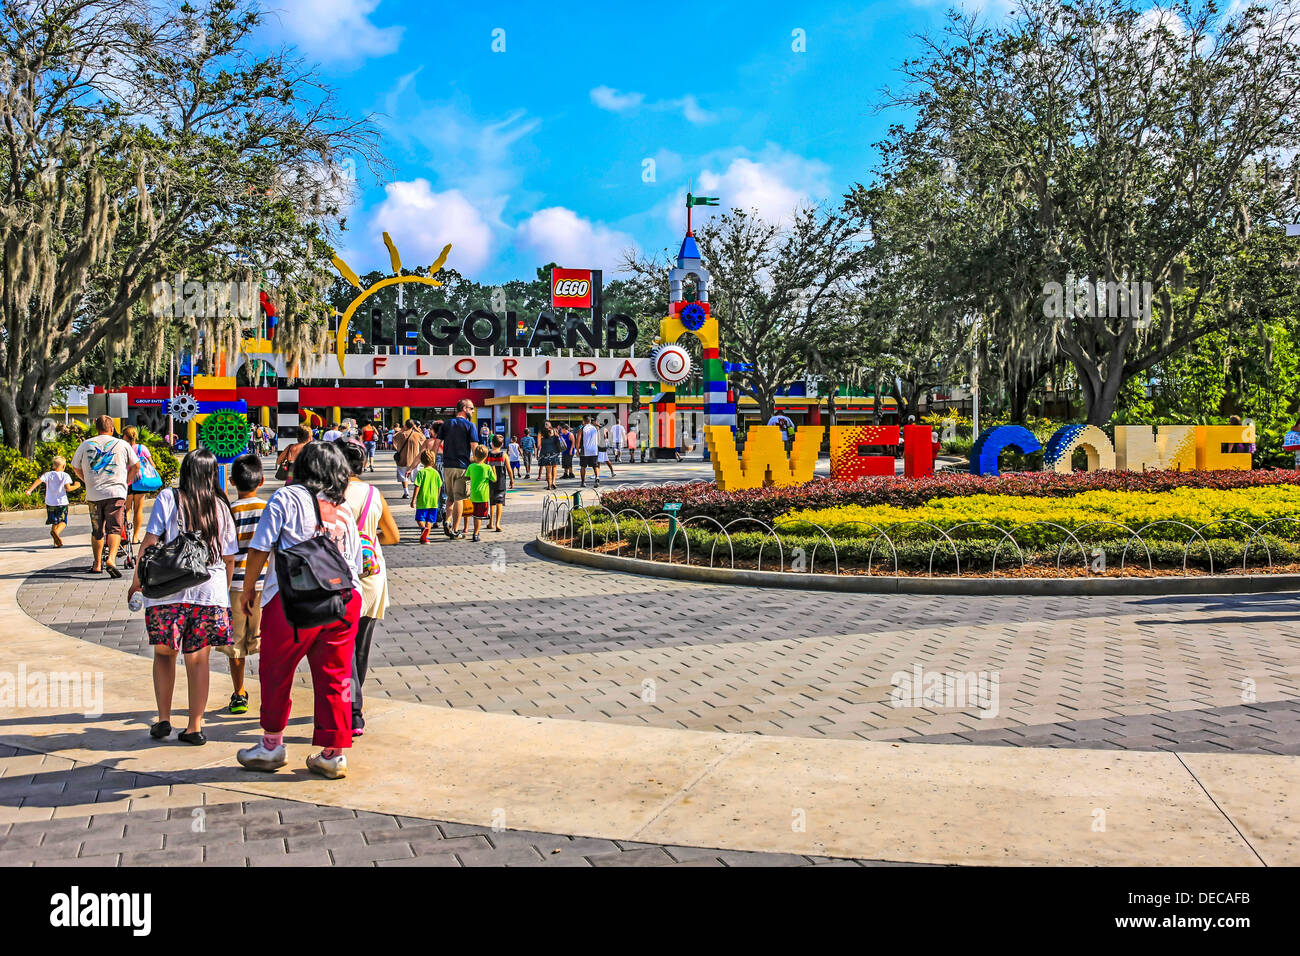 Entrance to Legoland Florida Stock Photo